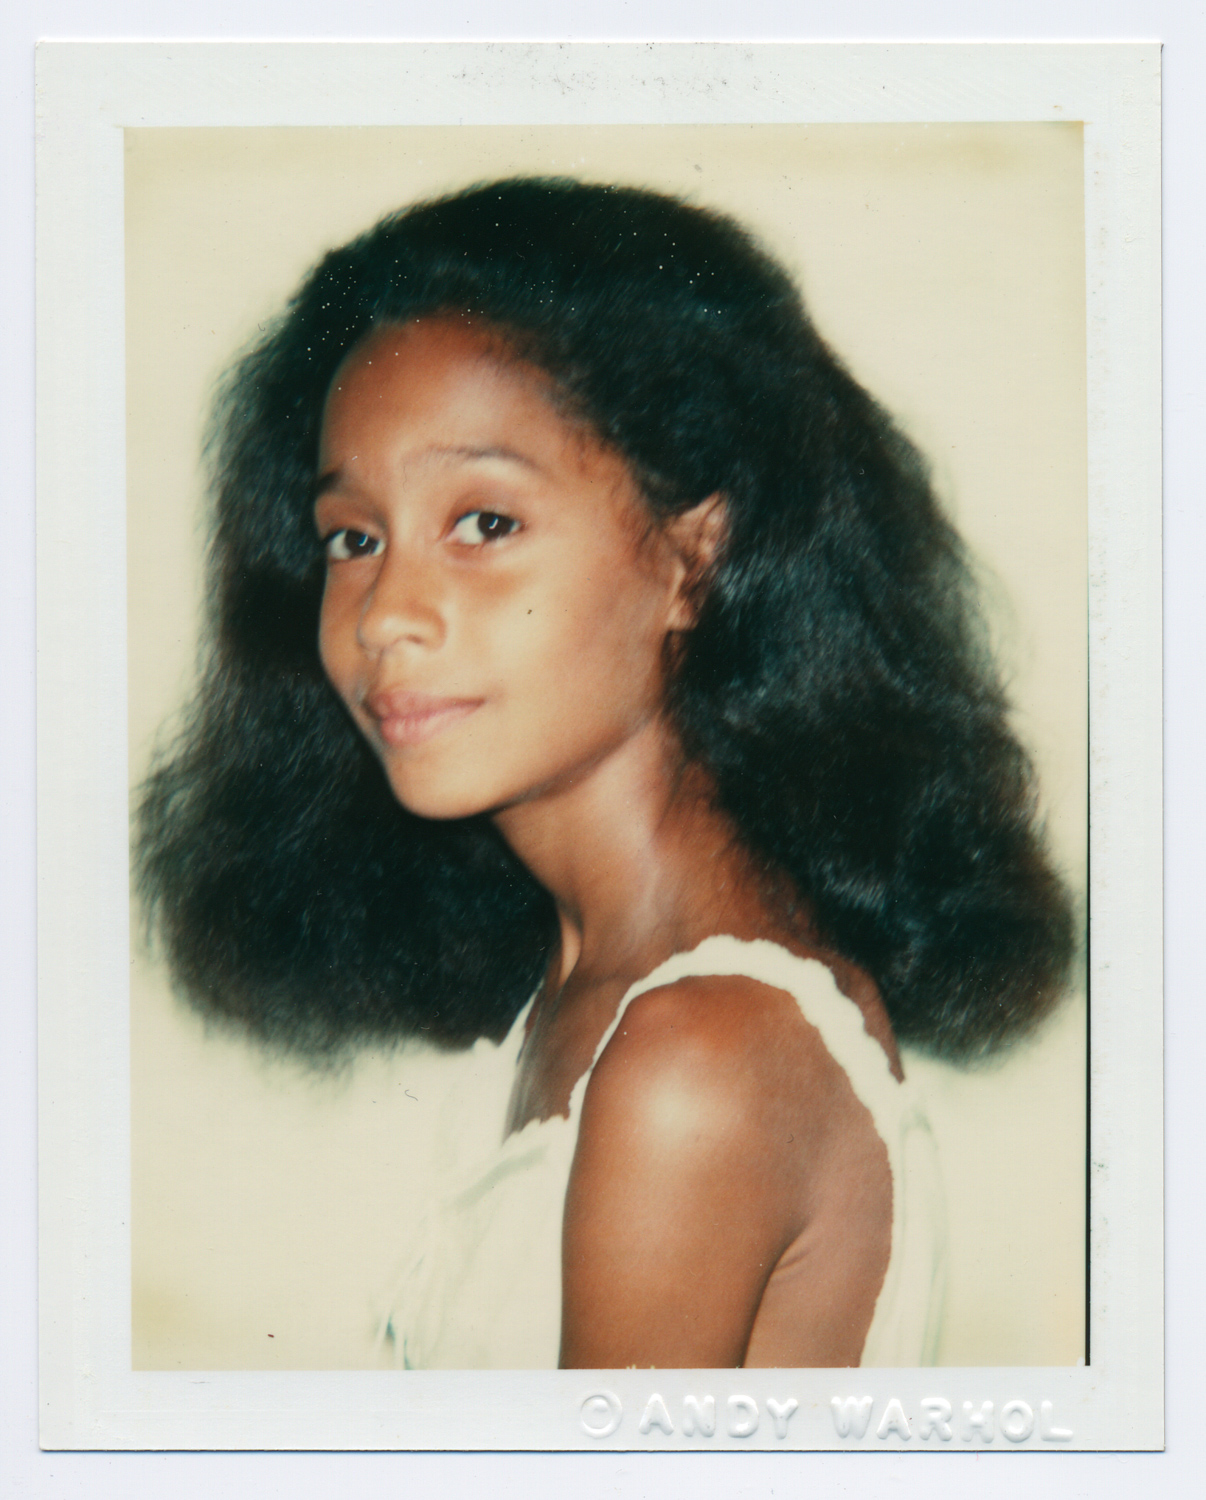 Andy Warhol, Tracee Ross, 1981 Polacolor 2. 4 ¼ x 3 3/8 inches Collection of Frances Lehman Loeb Art Center, Vassar College, Poughkeepsie, New York Gift of © The Andy Warhol Foundation for the Visual Arts, Inc.